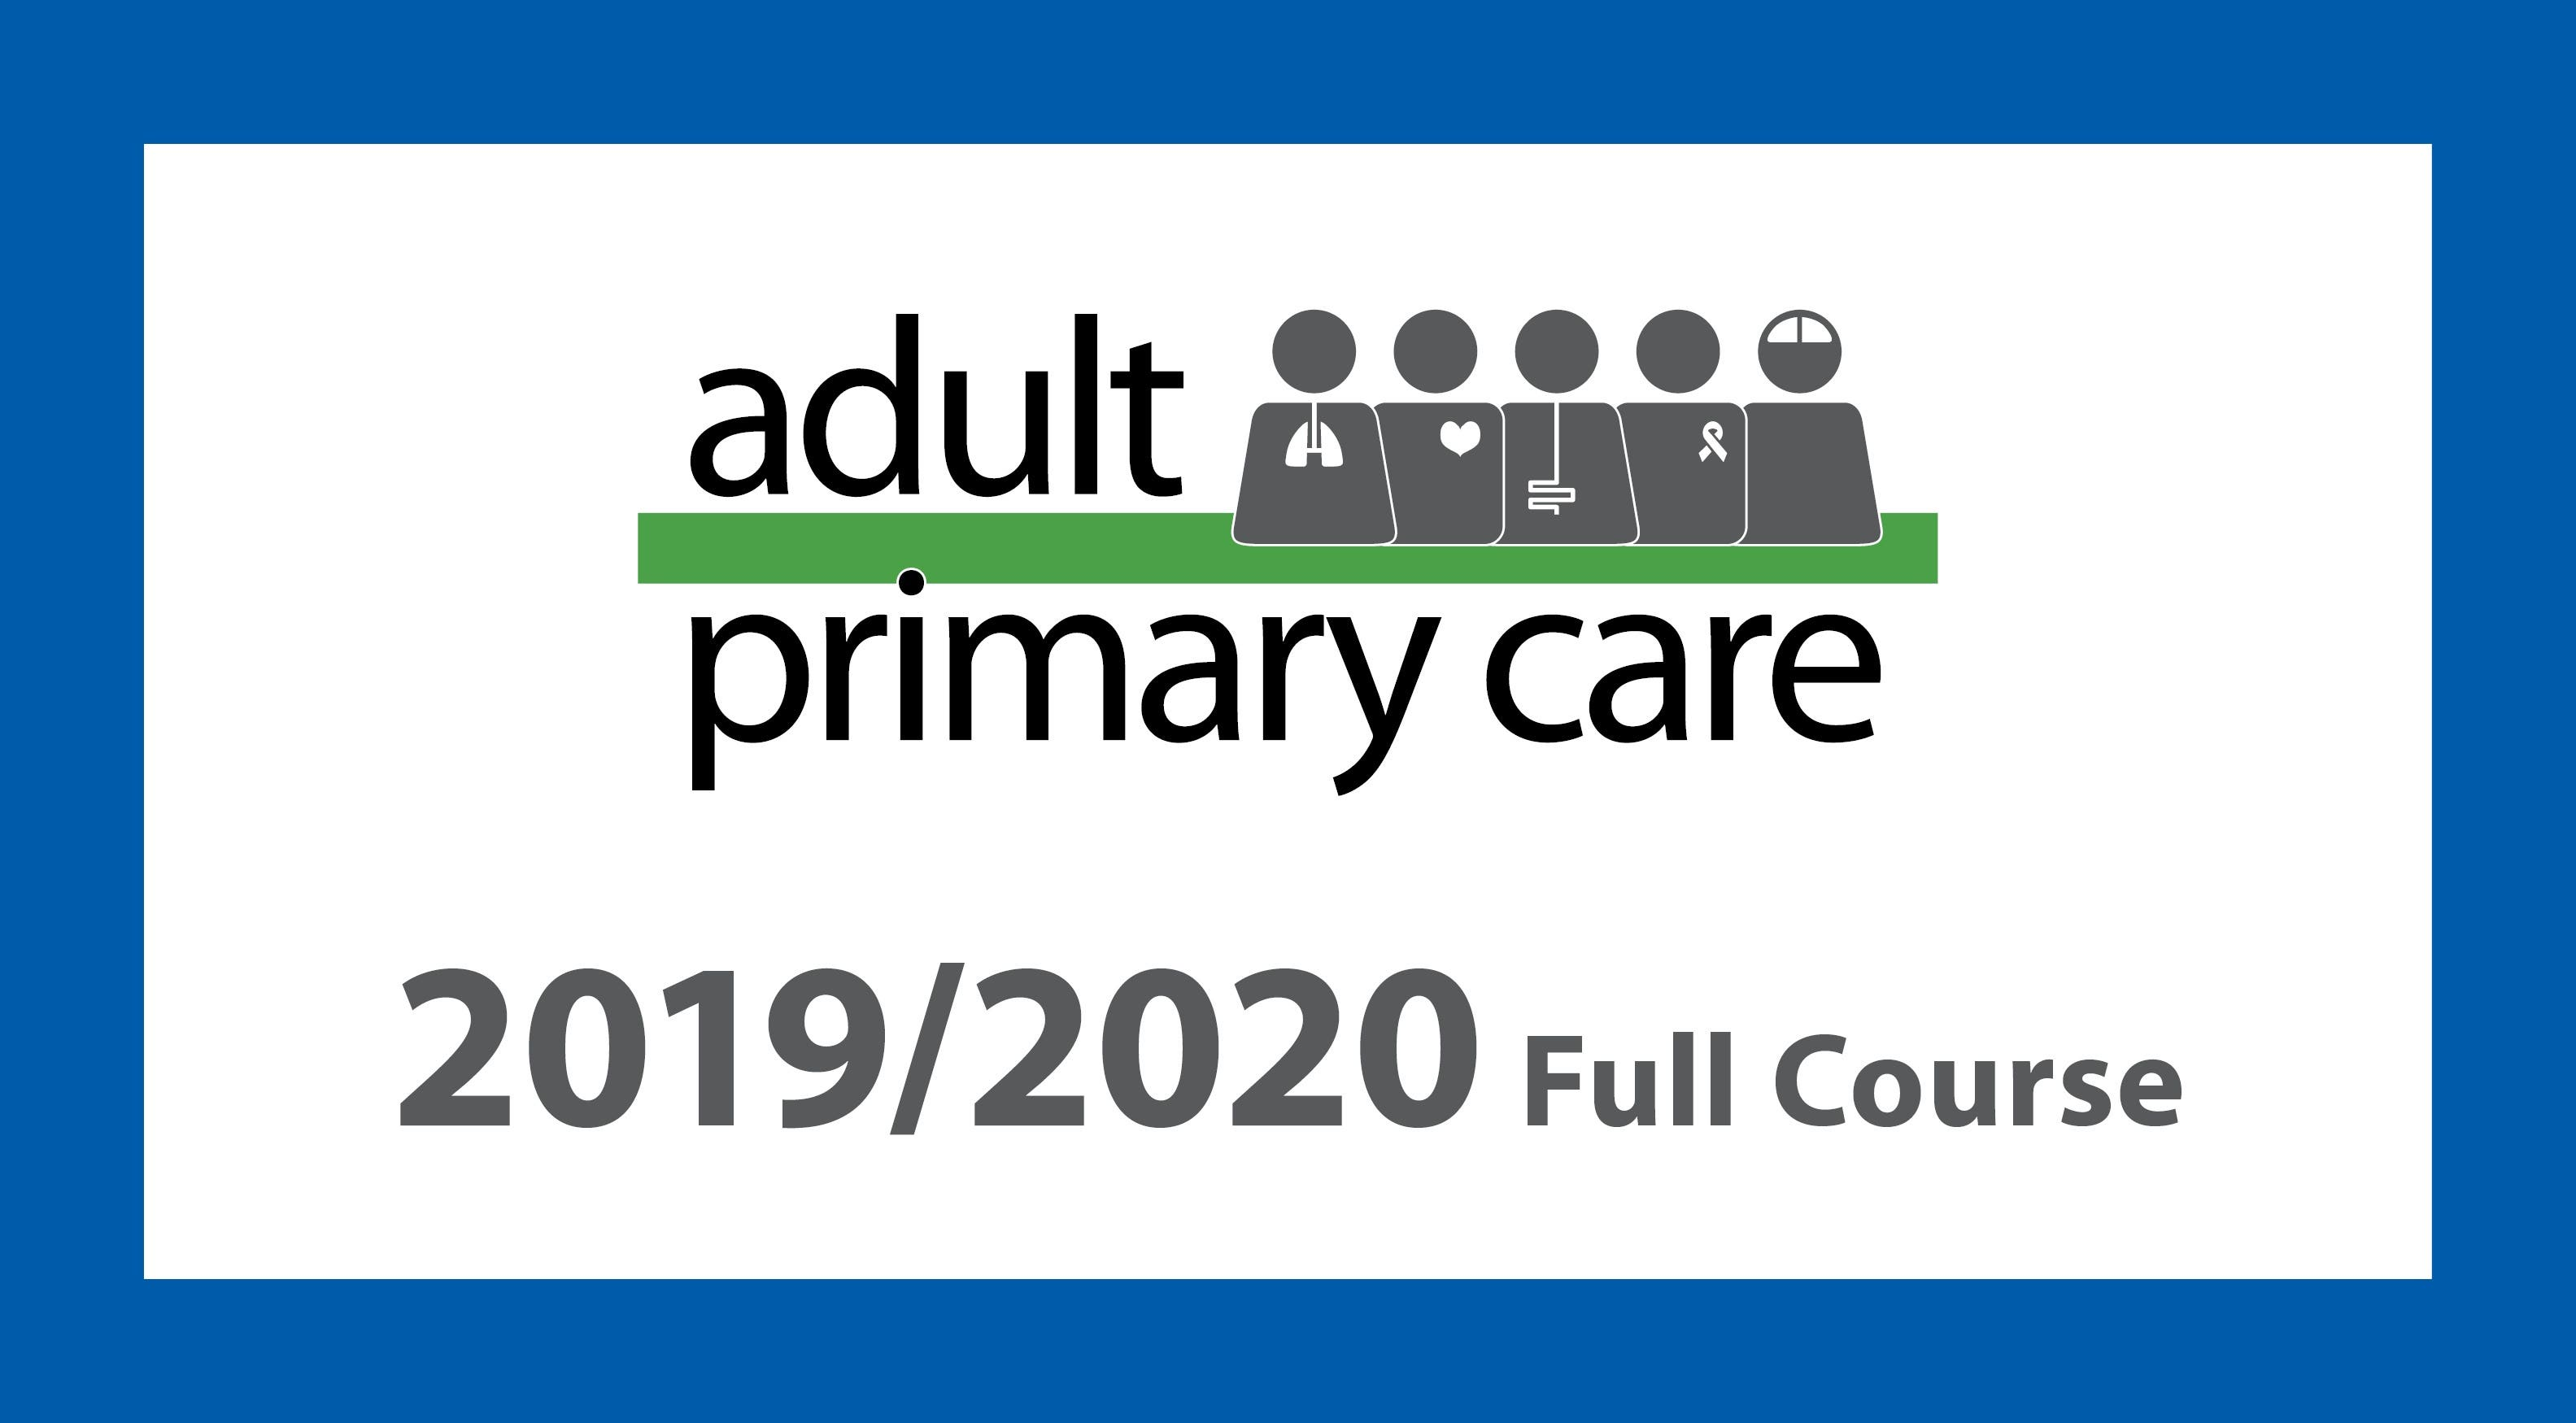 Adult Primary Care 2020 full course